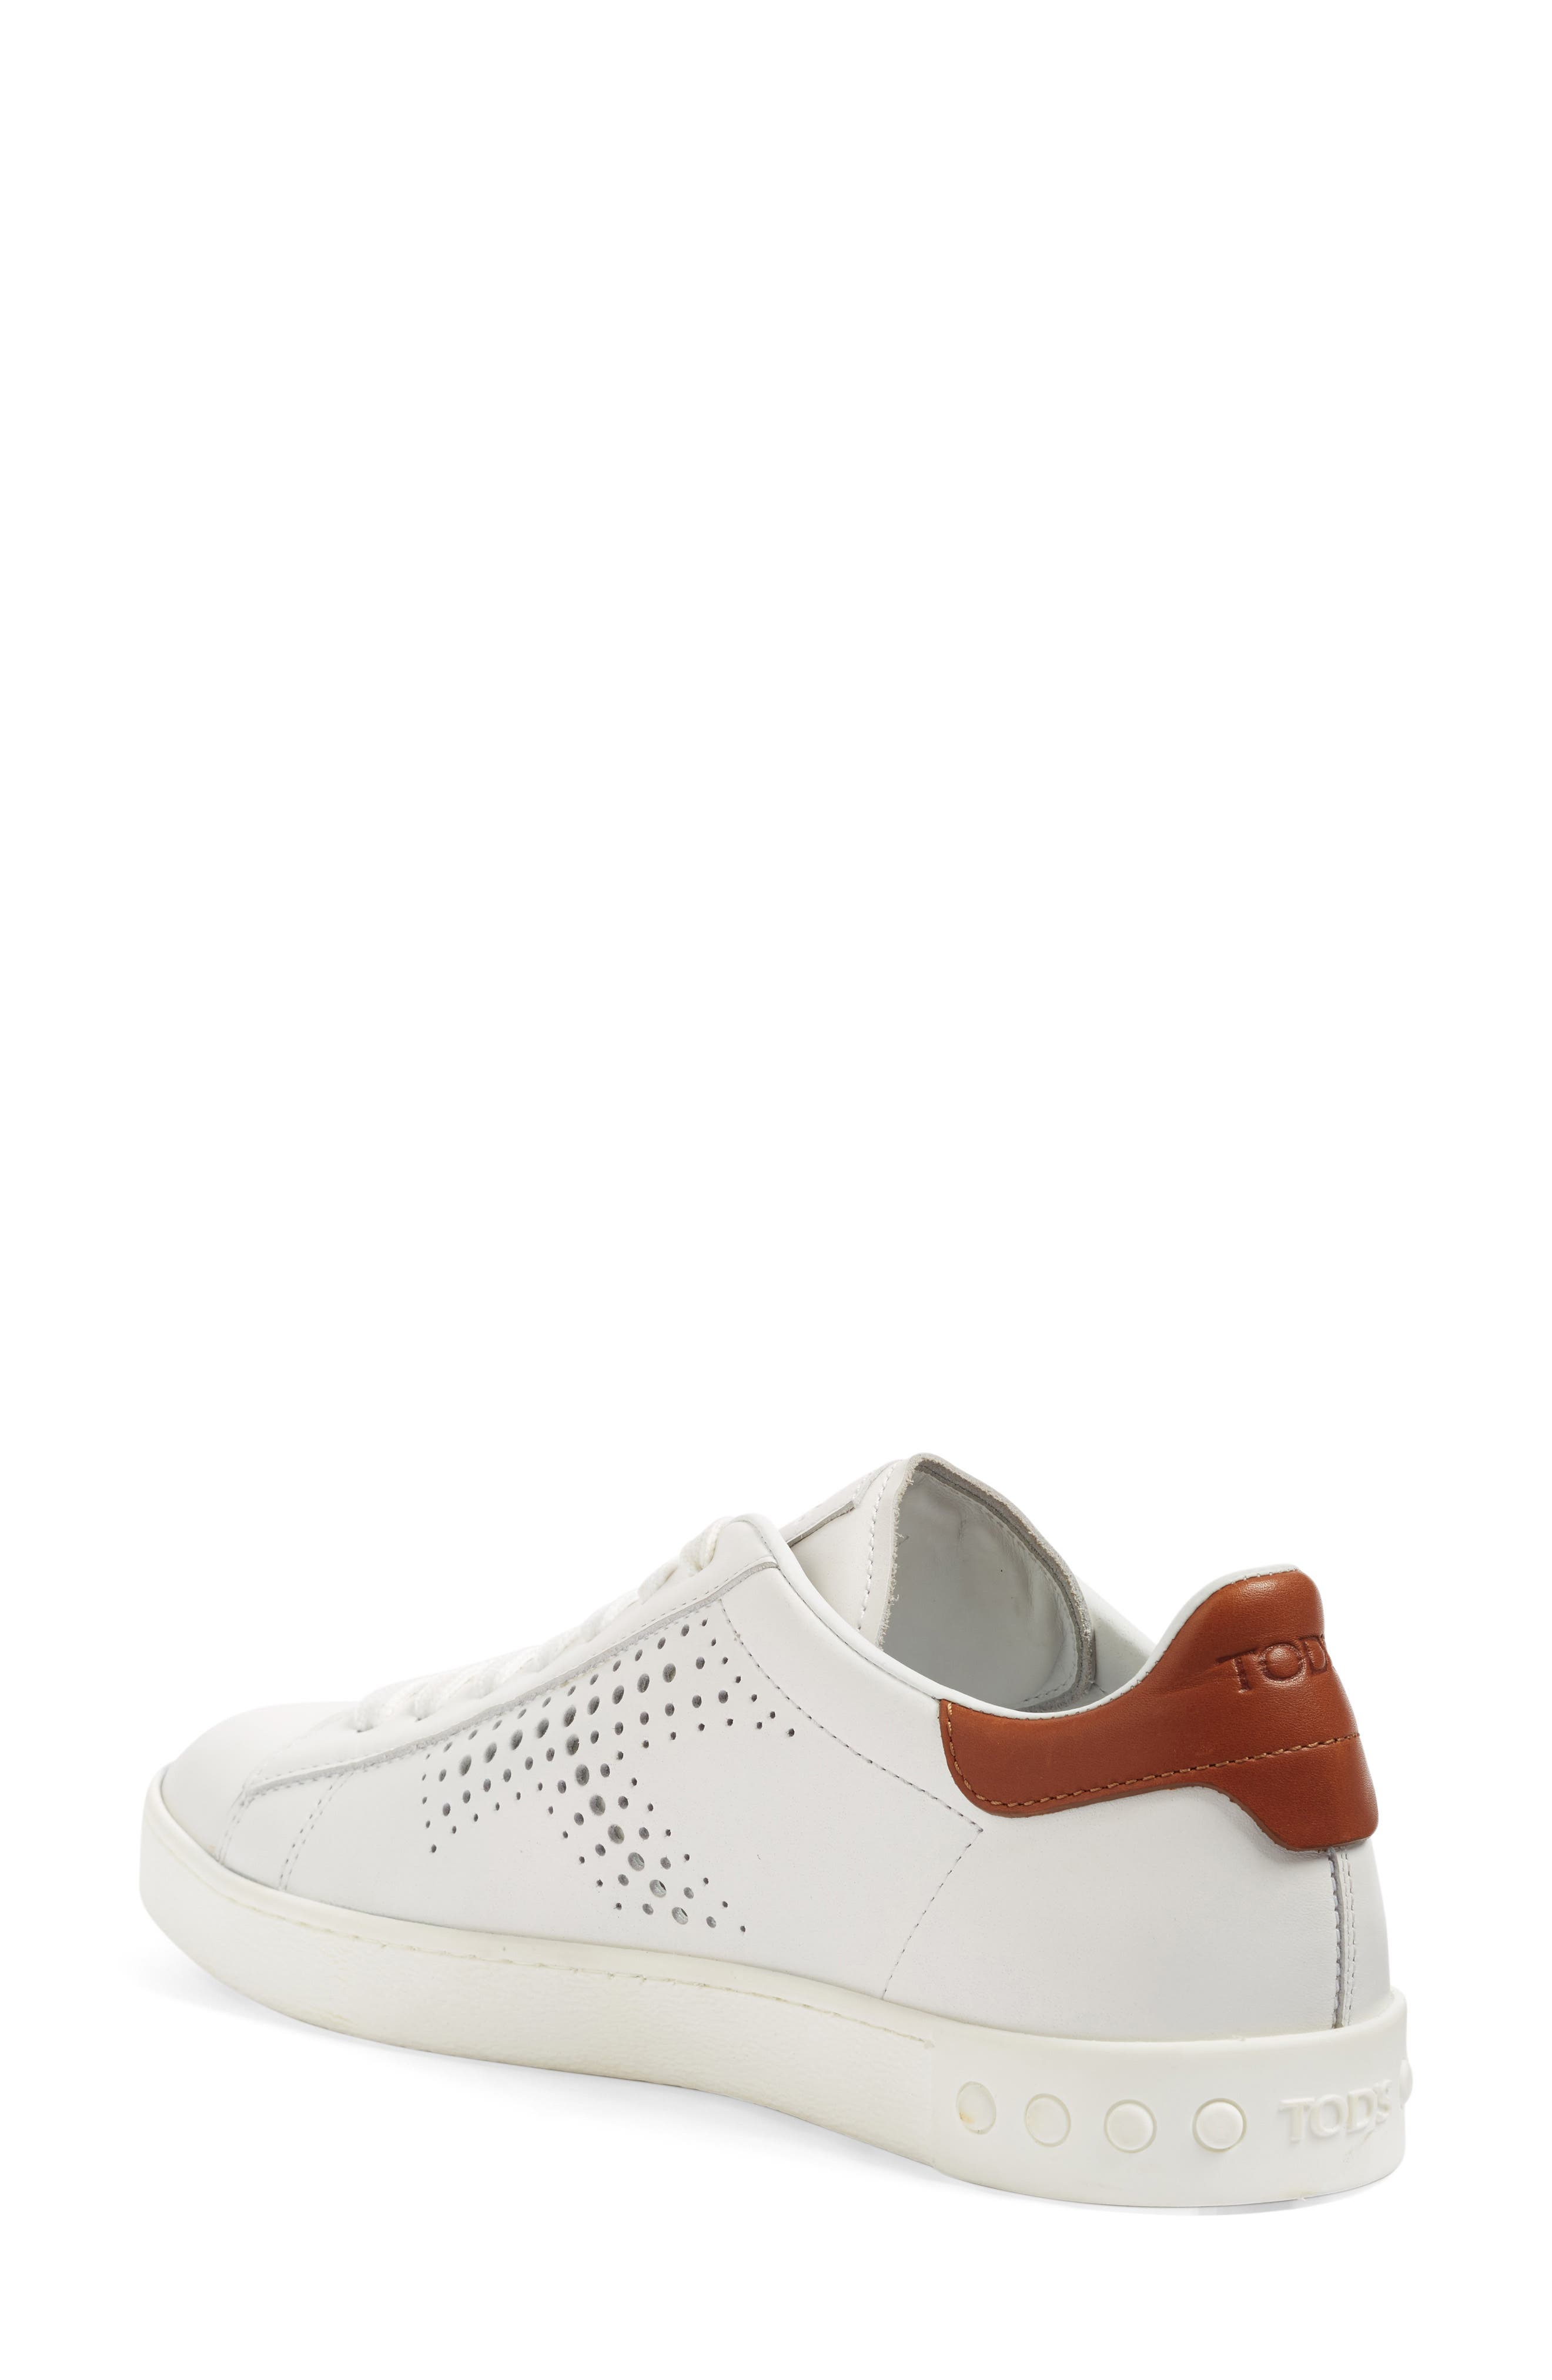 Perforated T Sneaker,                             Alternate thumbnail 4, color,